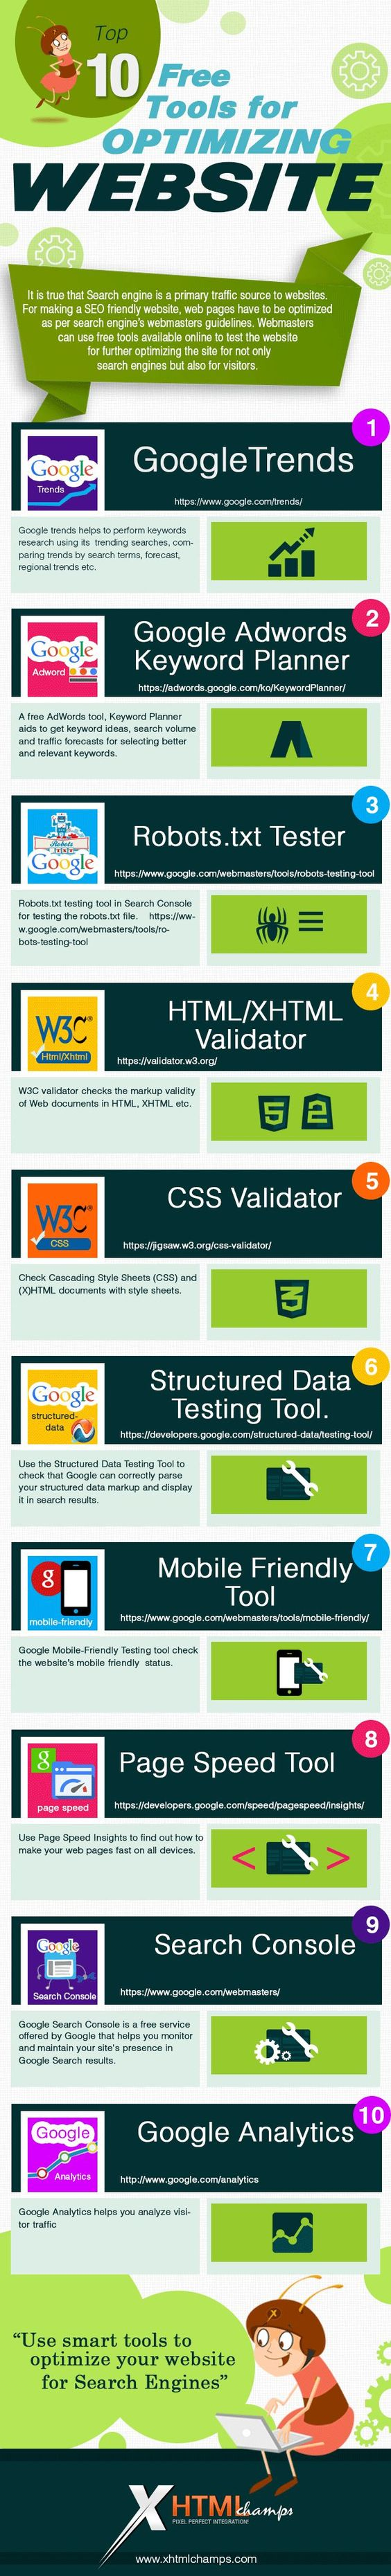 Top 10 Free Tools for Optimizing a Website #infographic